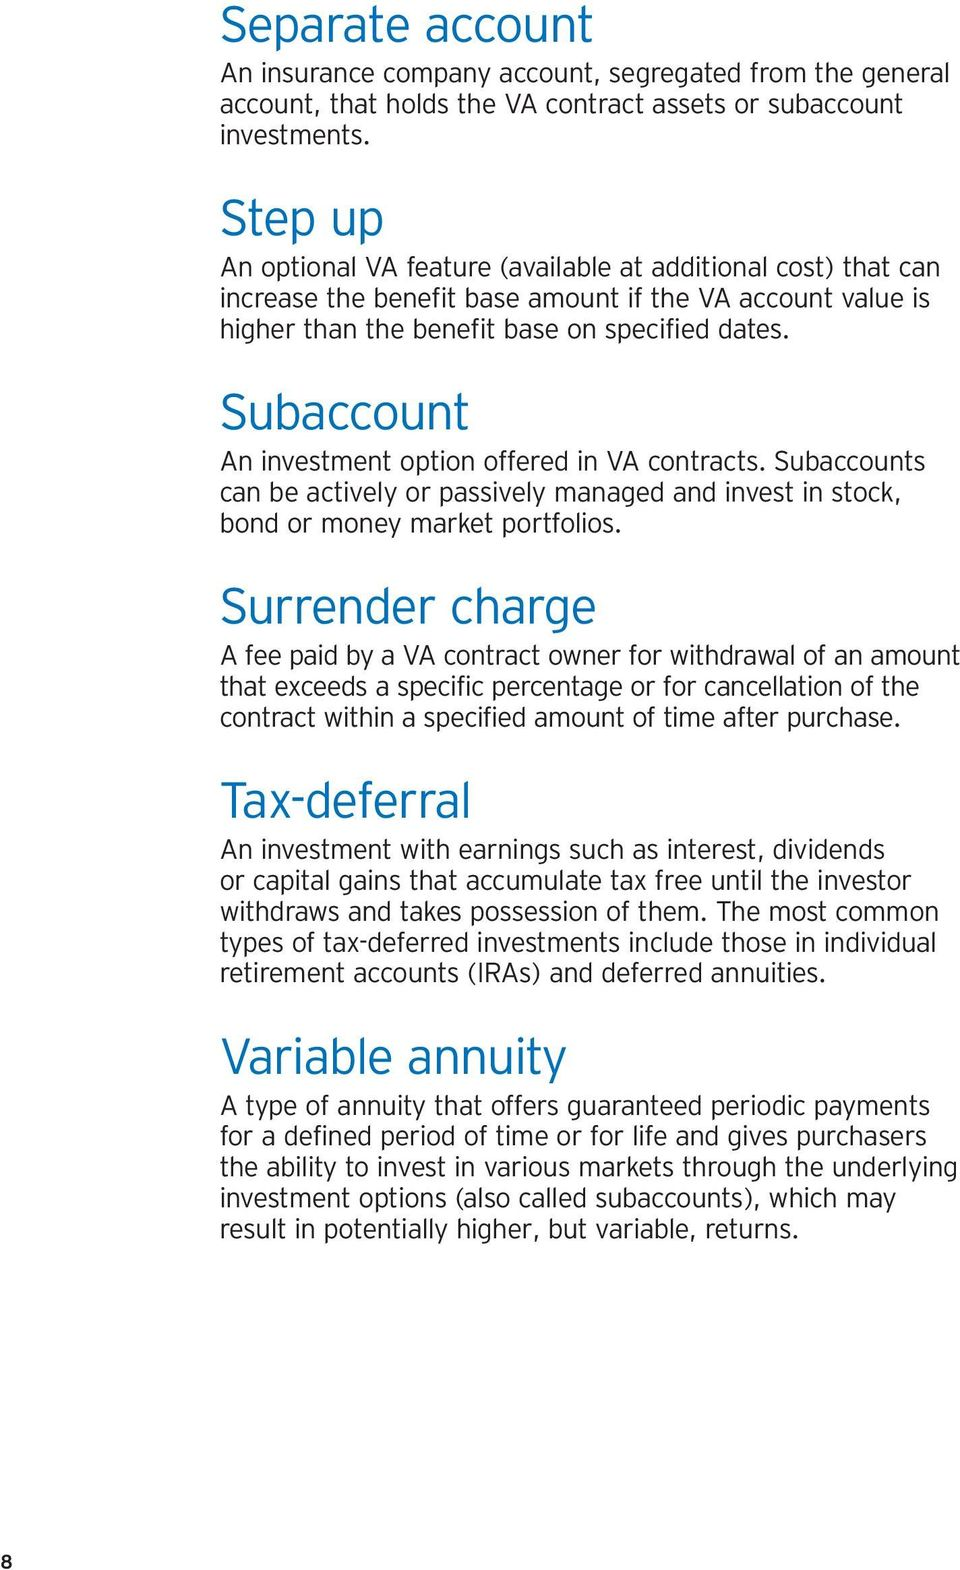 Subaccount An investment option offered in VA contracts. Subaccounts can be actively or passively managed and invest in stock, bond or money market portfolios.